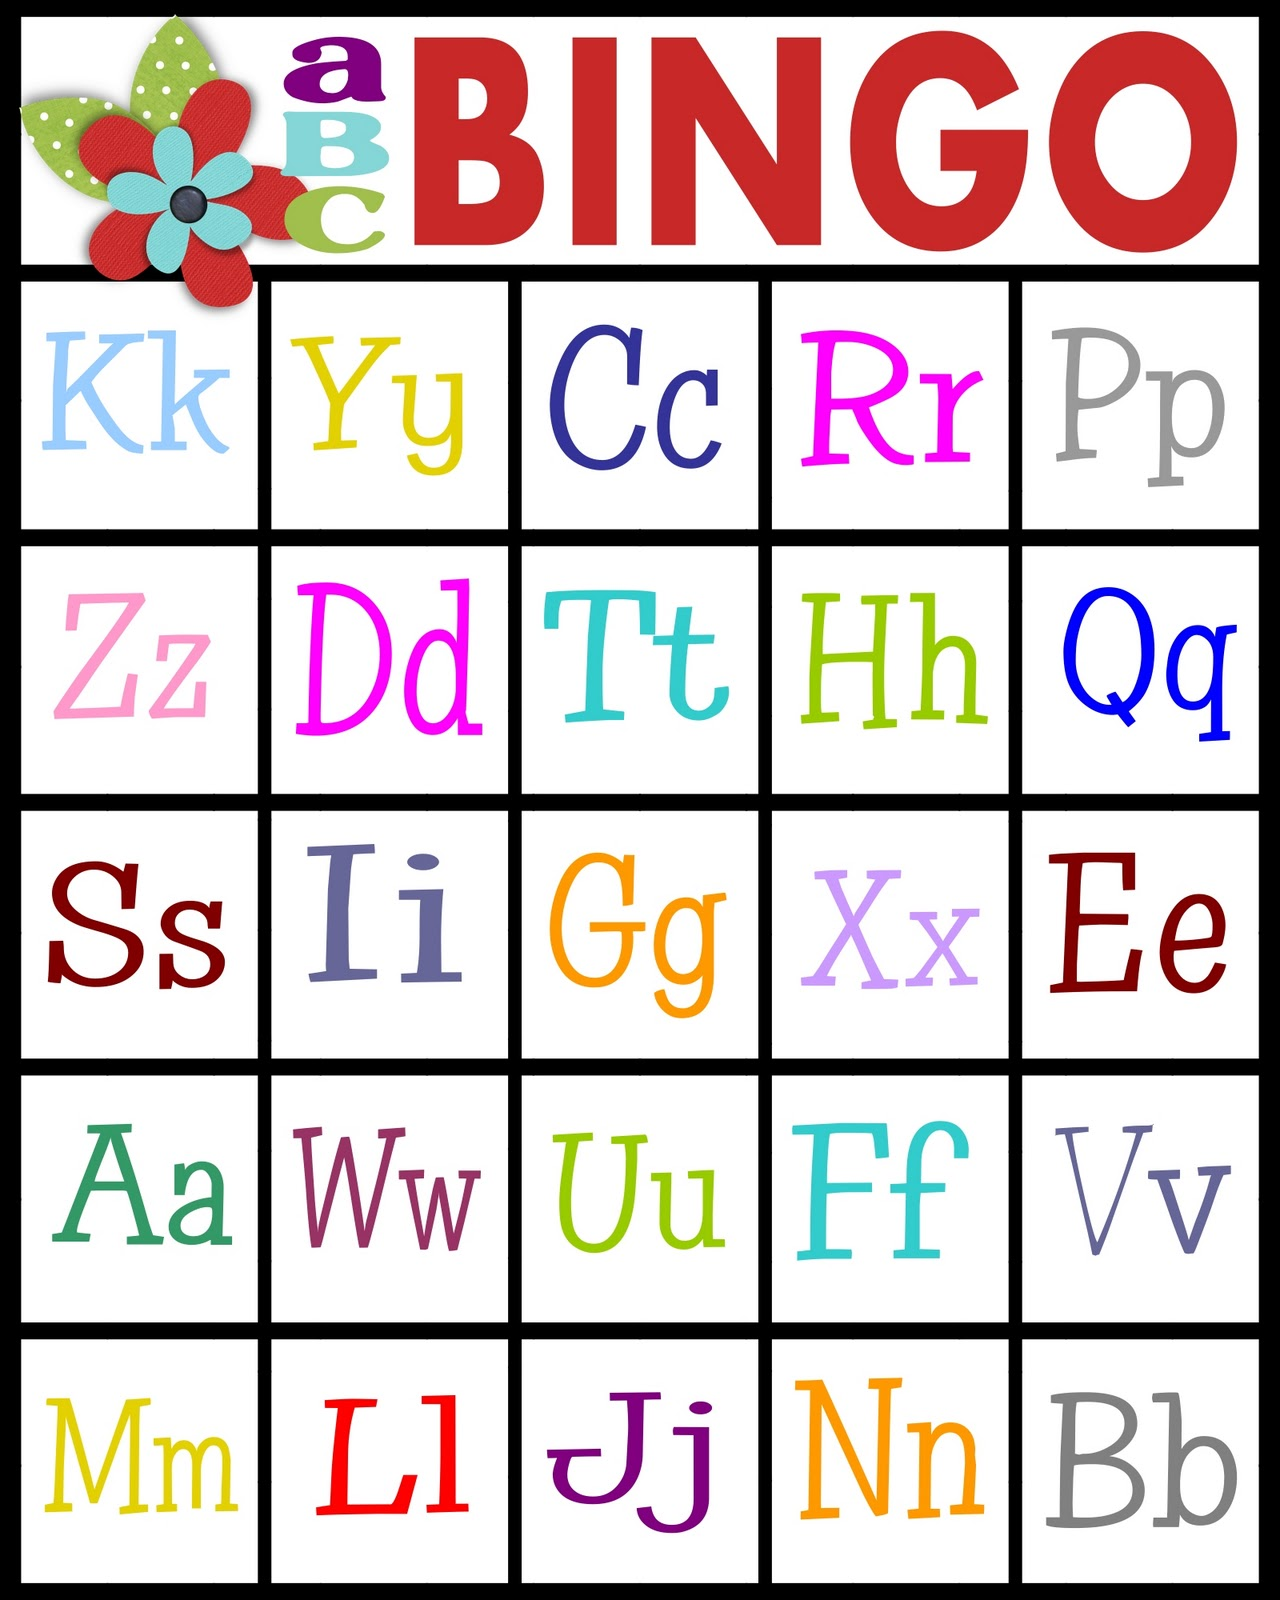 This is an image of Inventive Printable Bingo Calling Cards